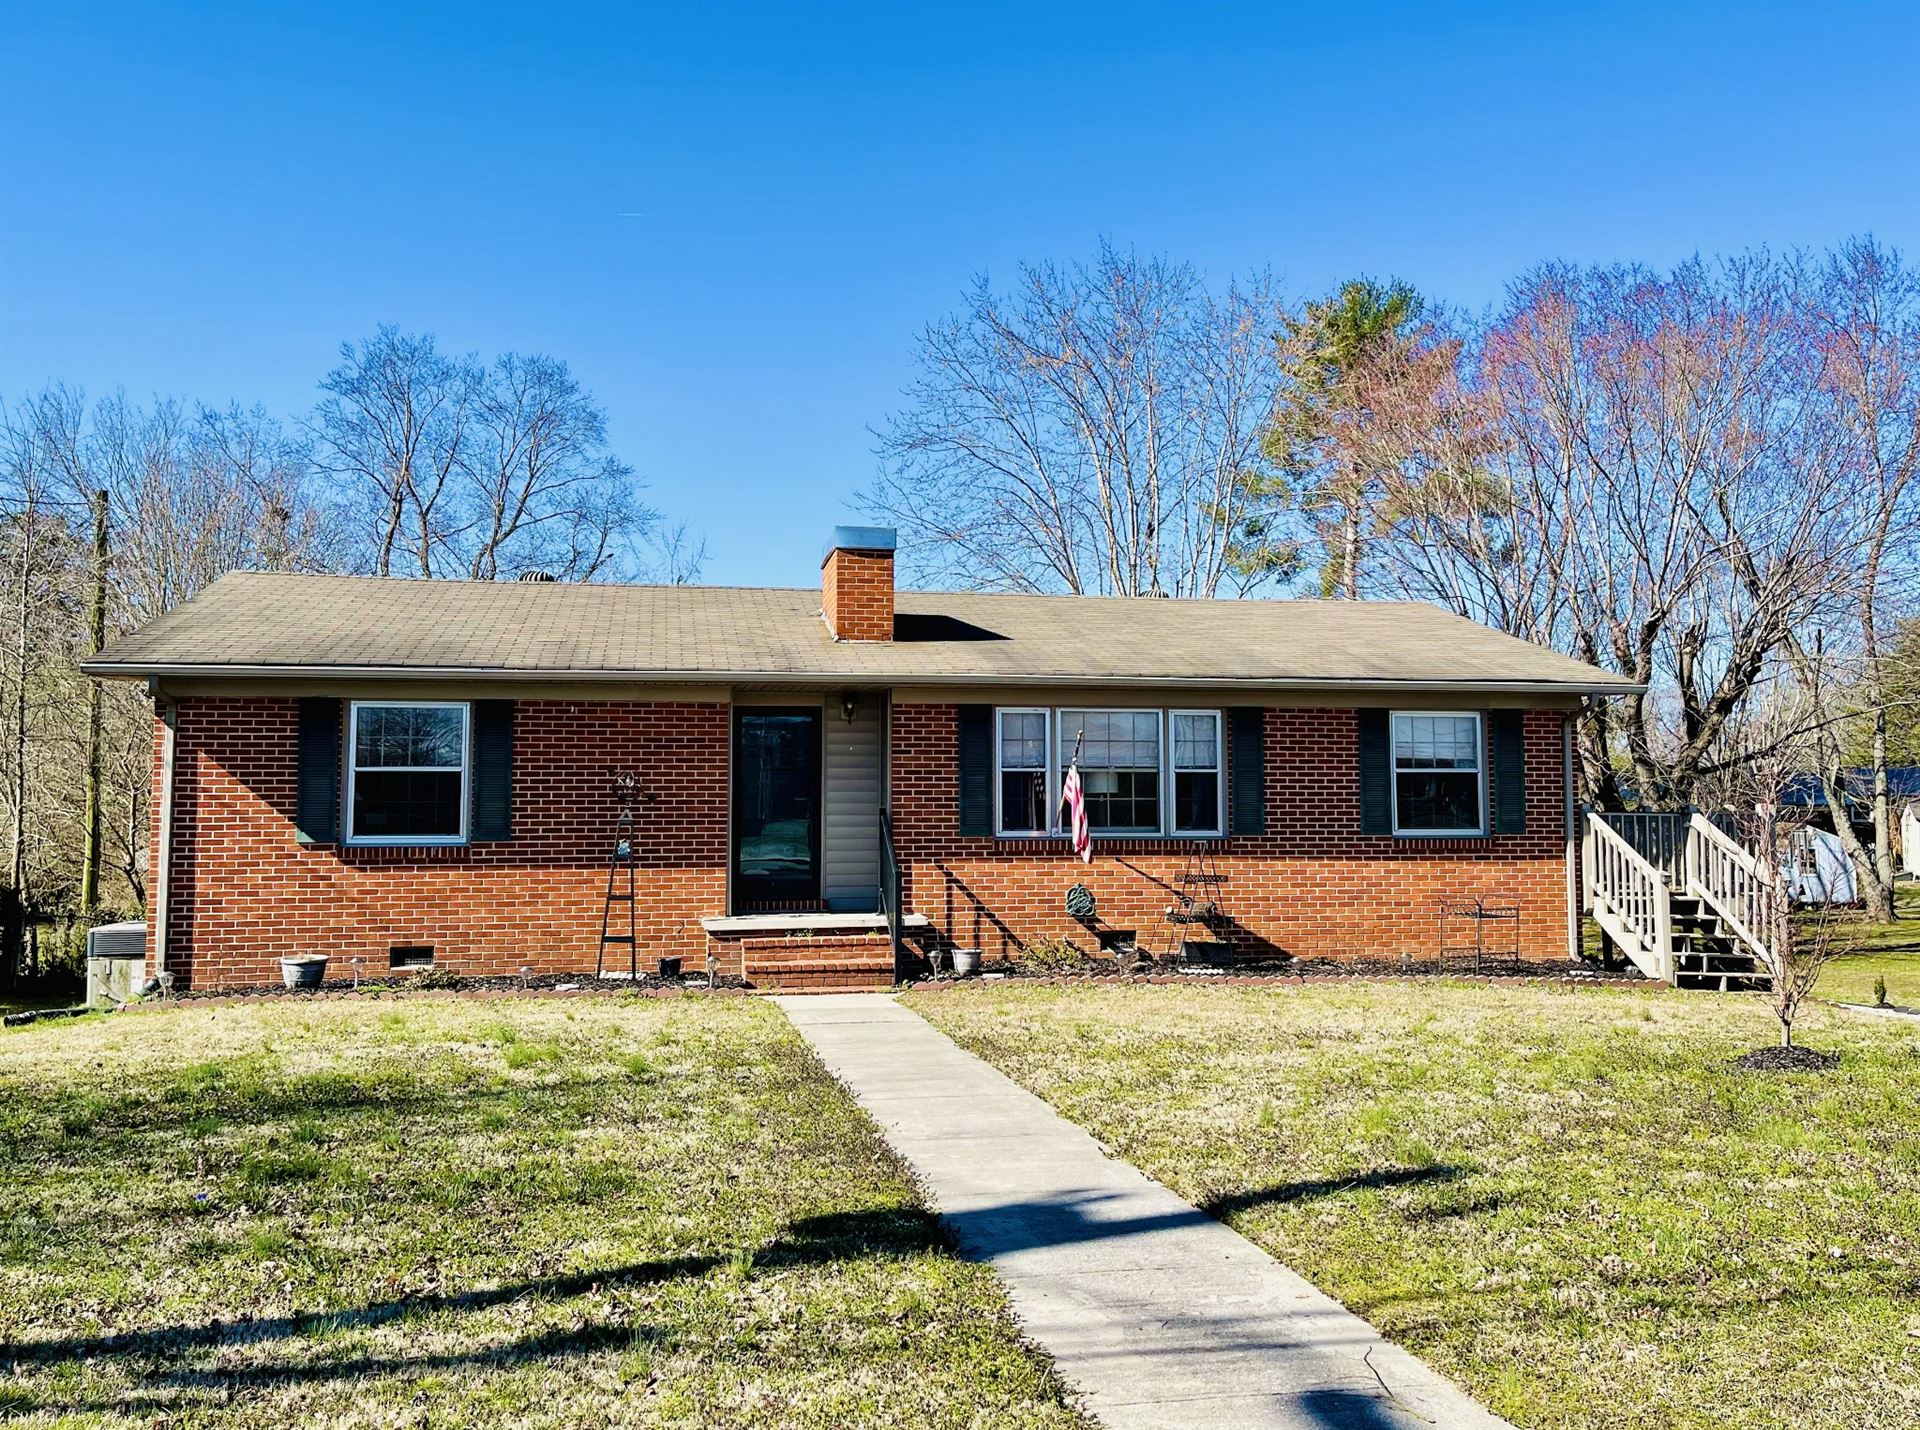 409 Sunset Dr, McMinnville, TN 37110 - MLS#: 2232044